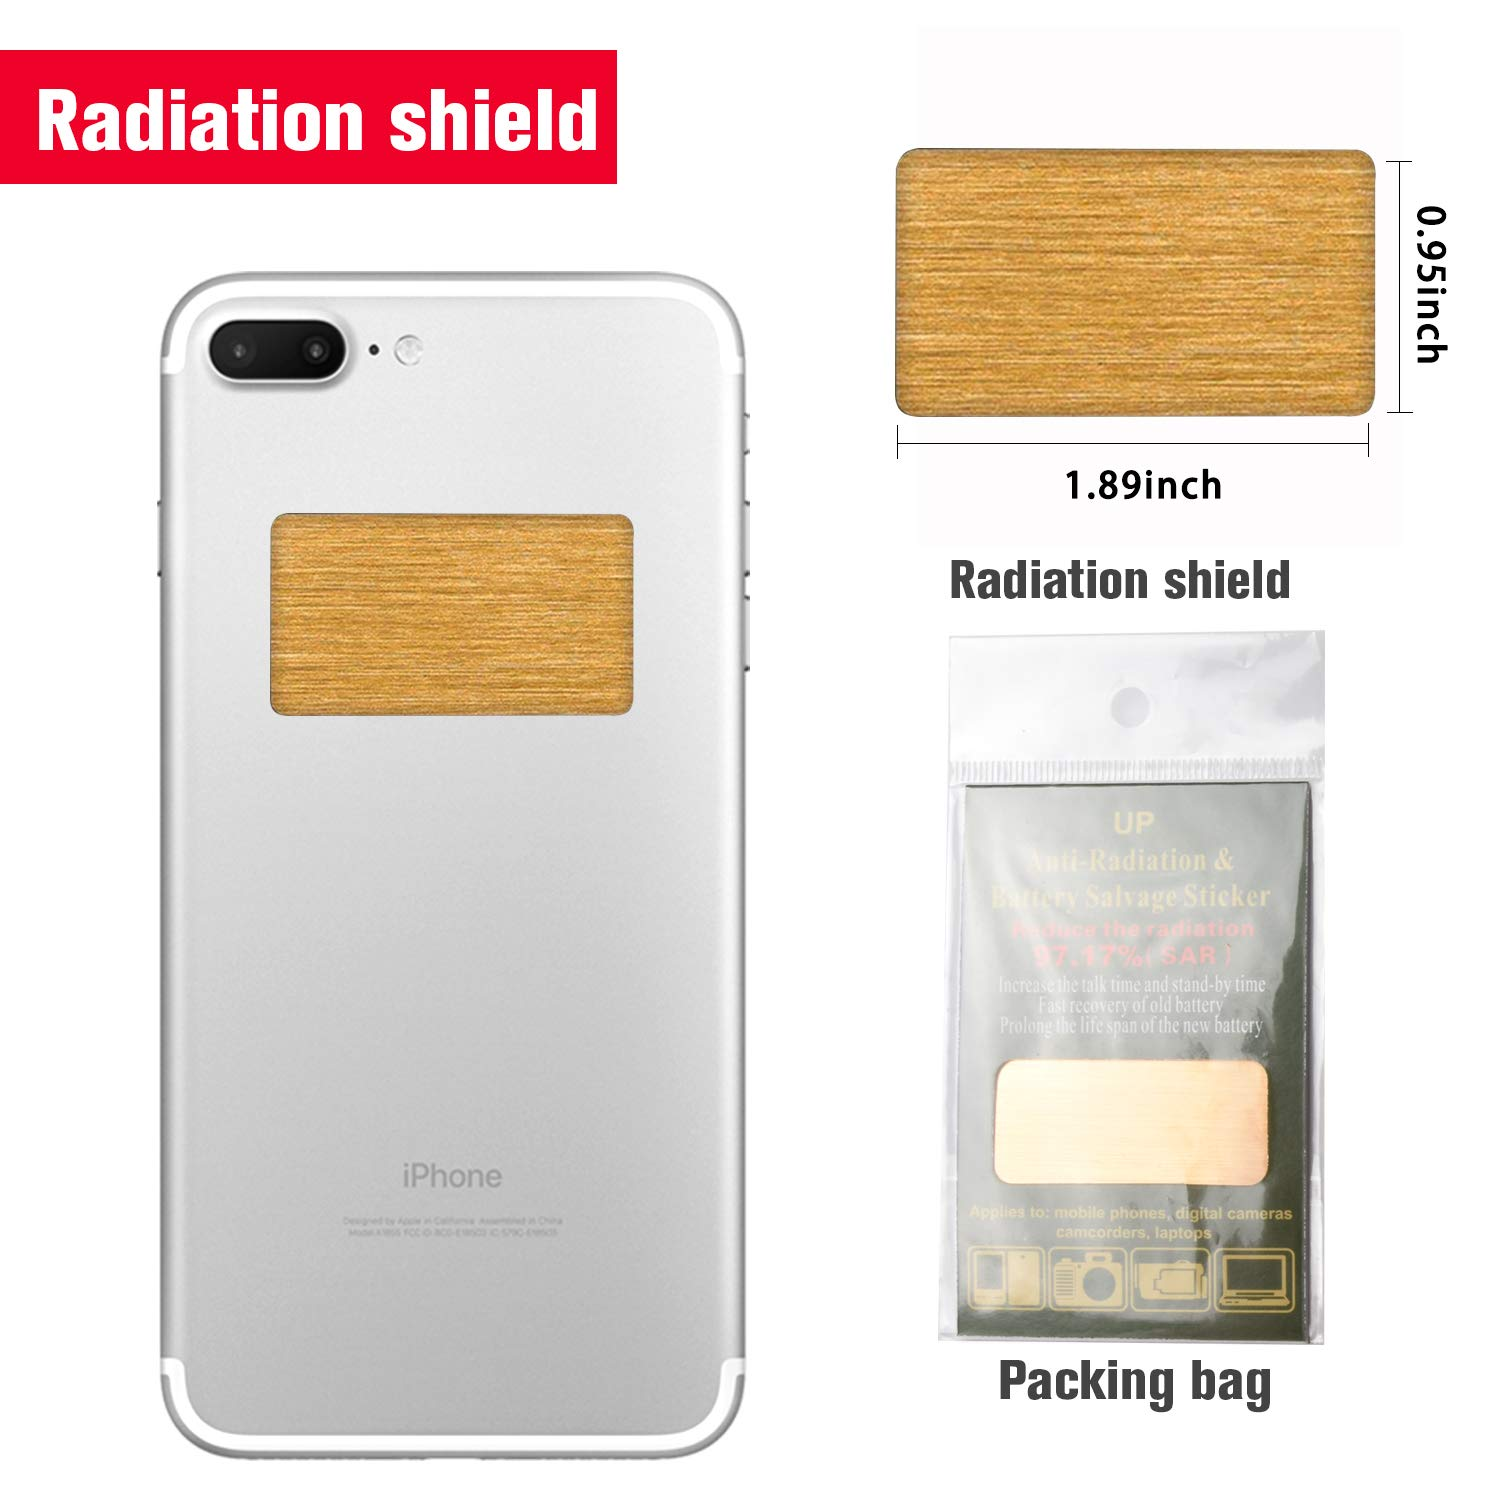 2 Pack - EMF Protection Cell Phone Anti Radiation Protector Sticker, Negative Ions EMF Blocker for Mobile Phones,Laptop and All Electronic Devices